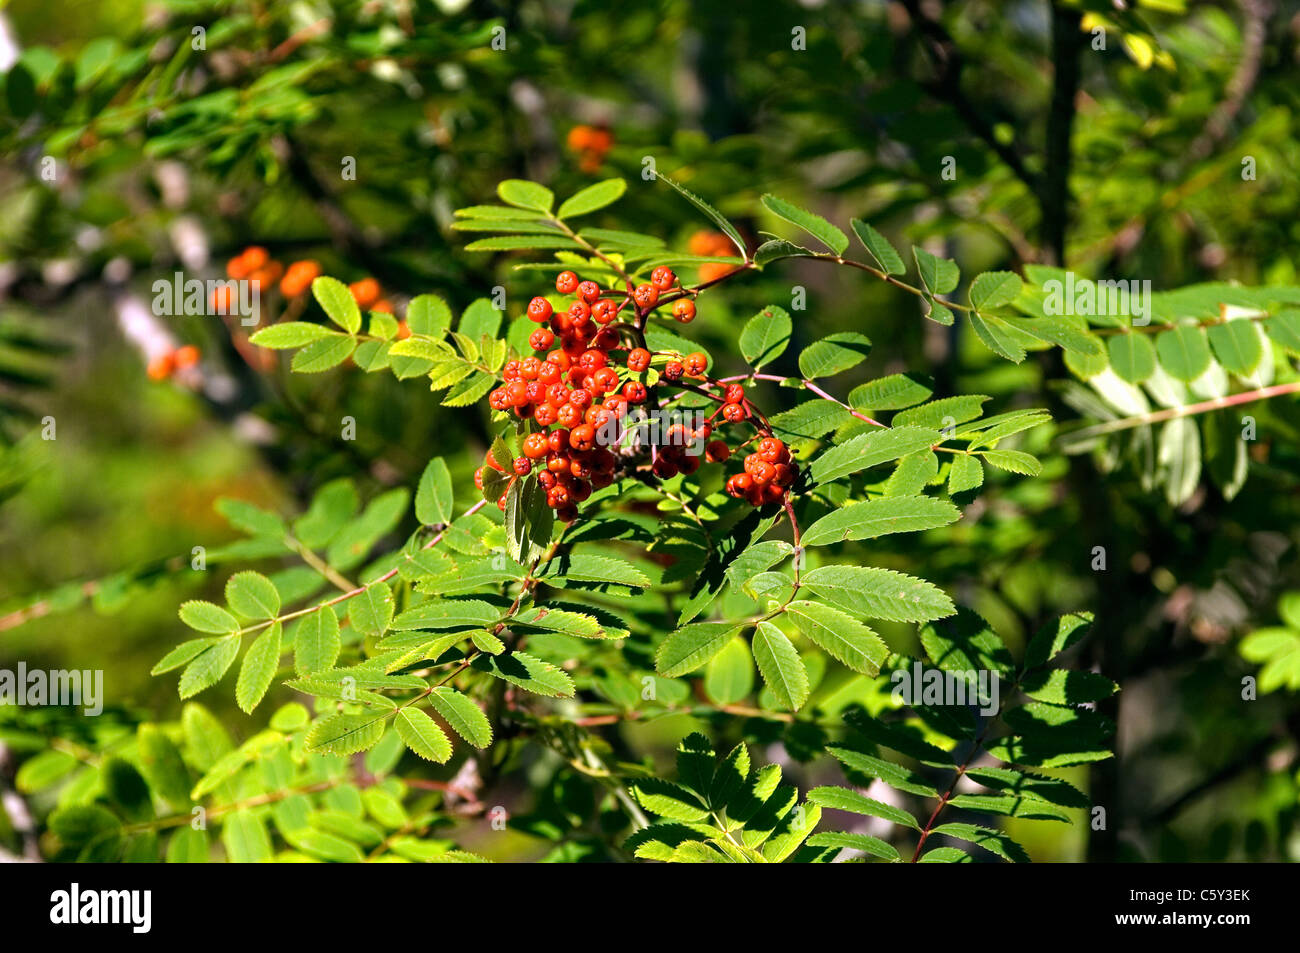 Rowan tree (Sorbus aucuparia) also known as Mountain Ash. Red fruit berries, leaves. Scotland - Stock Image